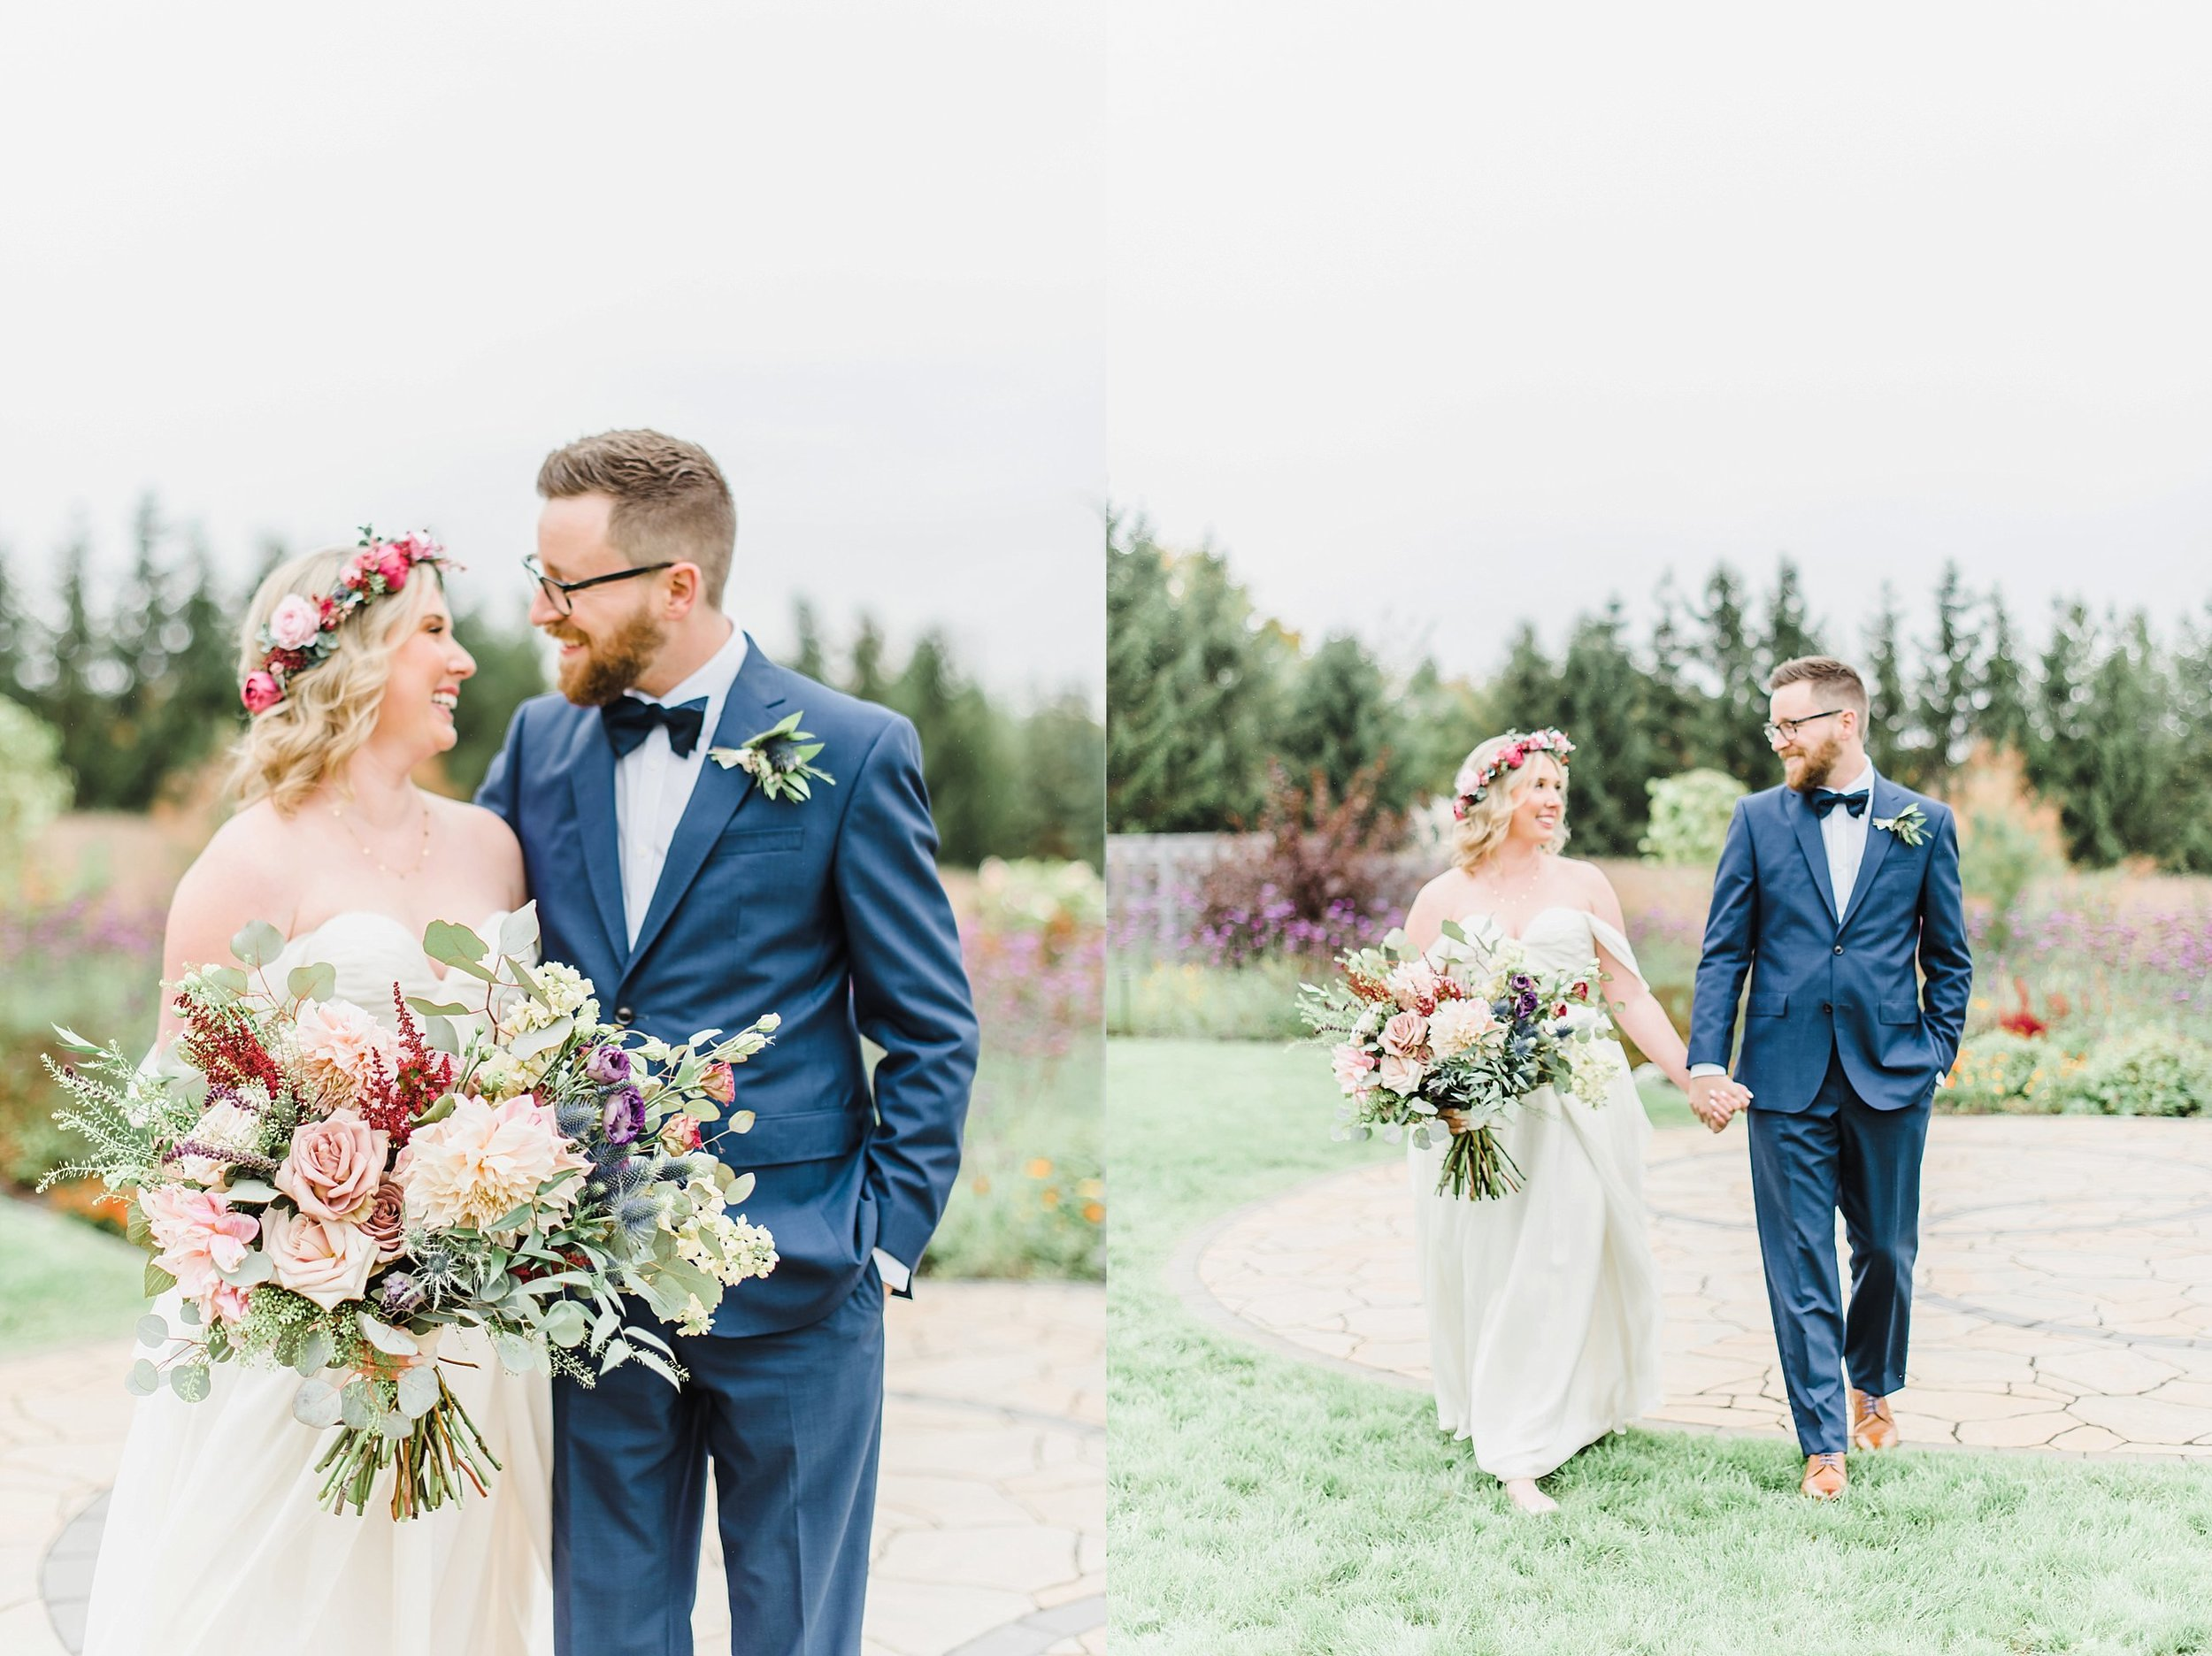 light airy indie fine art ottawa wedding photographer | Ali and Batoul Photography_0779.jpg